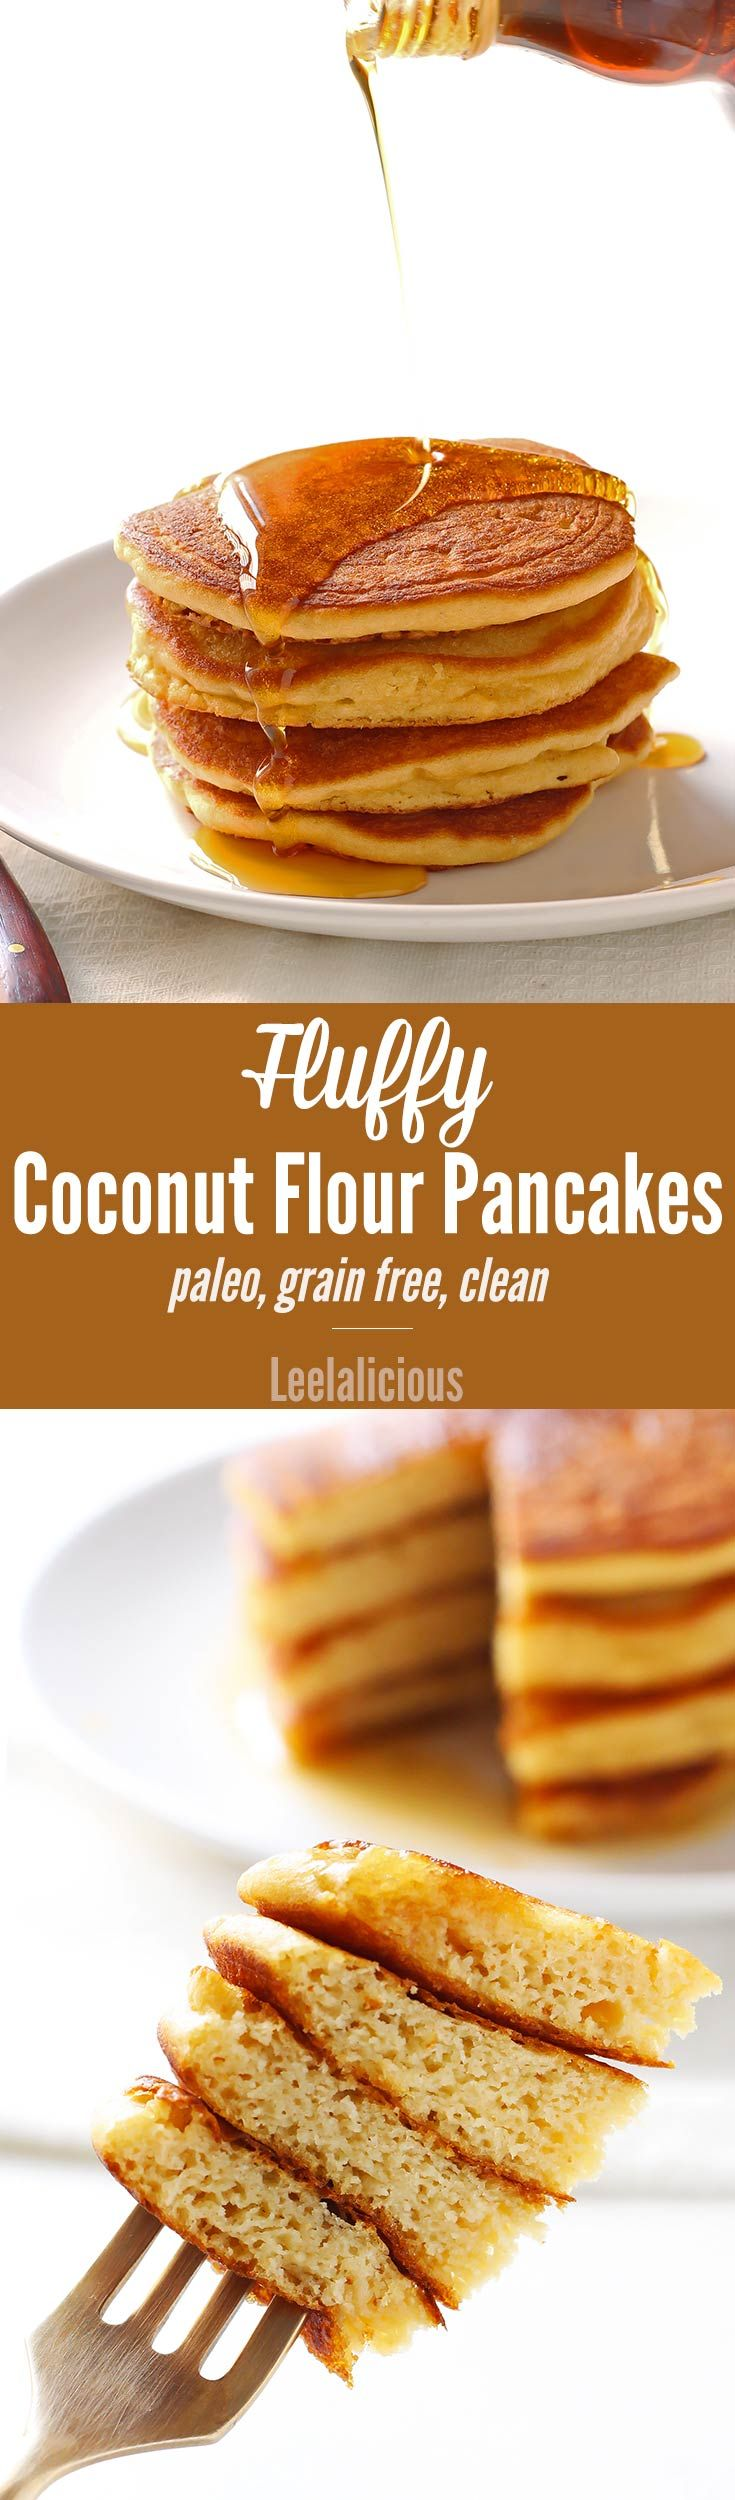 This clean eating recipe for fluffy coconut flour pancakes makes a delicious breakfast treat that is gluten free grain free and paleo friendly.